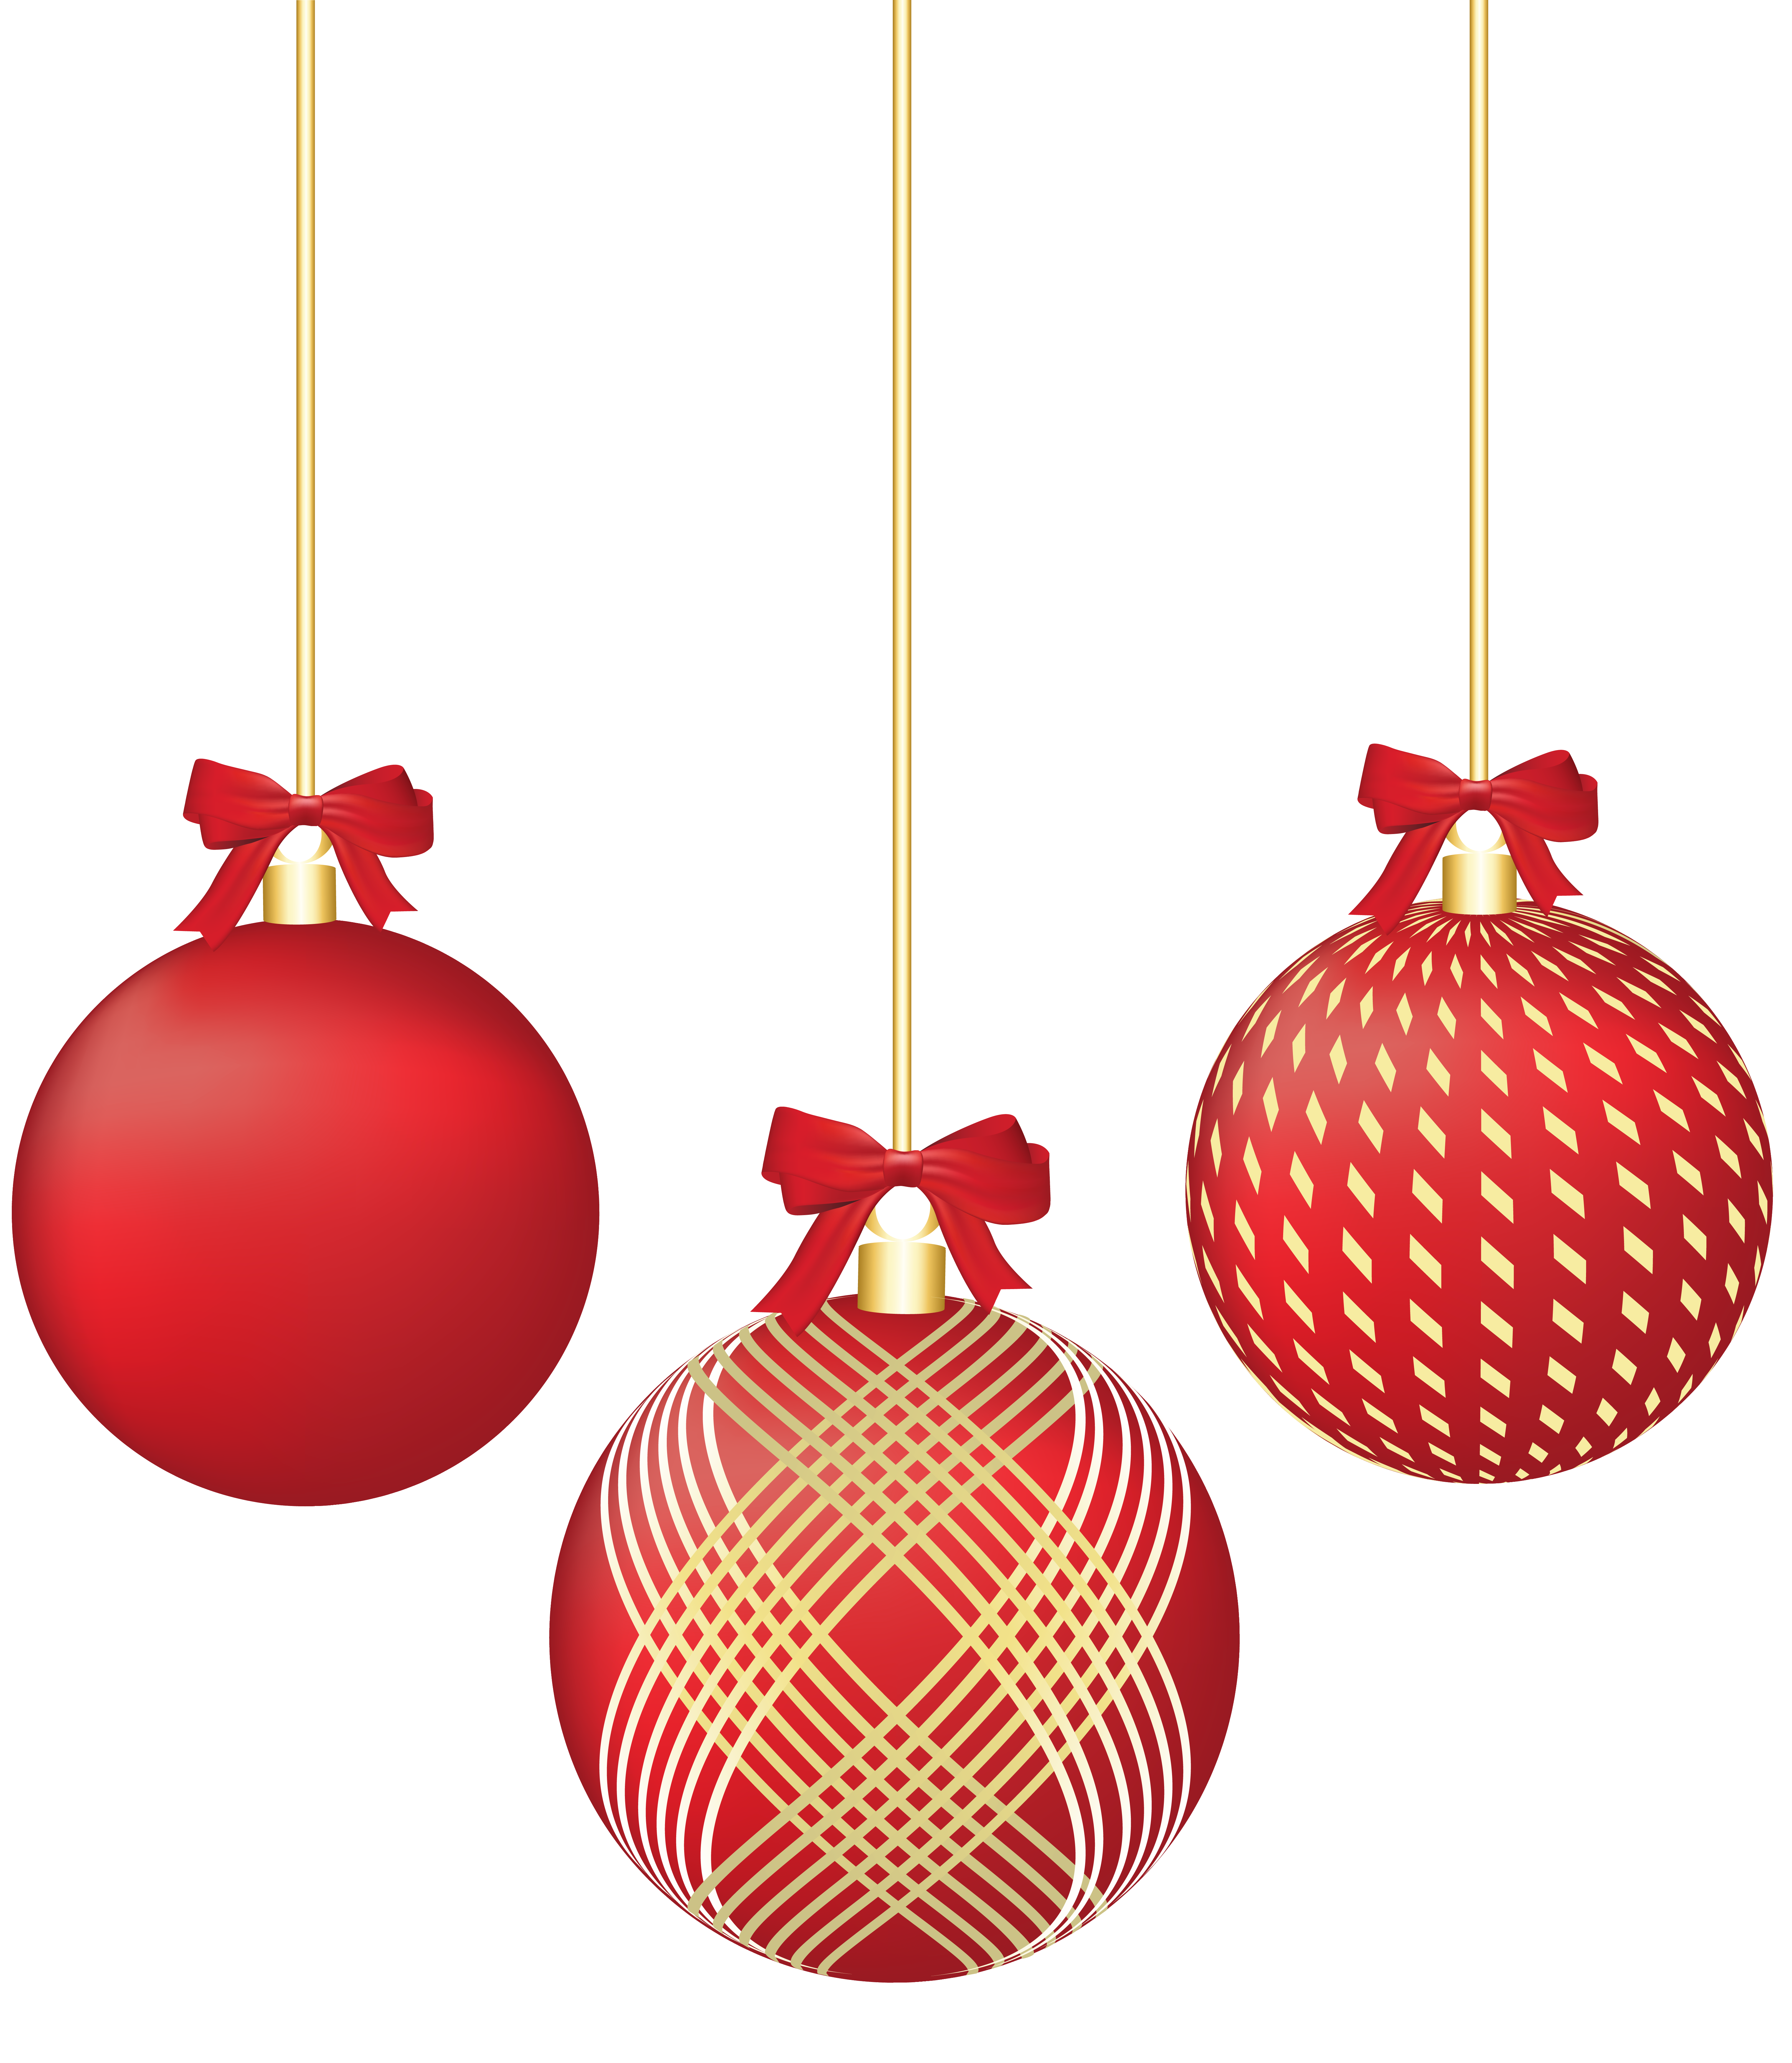 Christmas ornaments png. Red clip art image